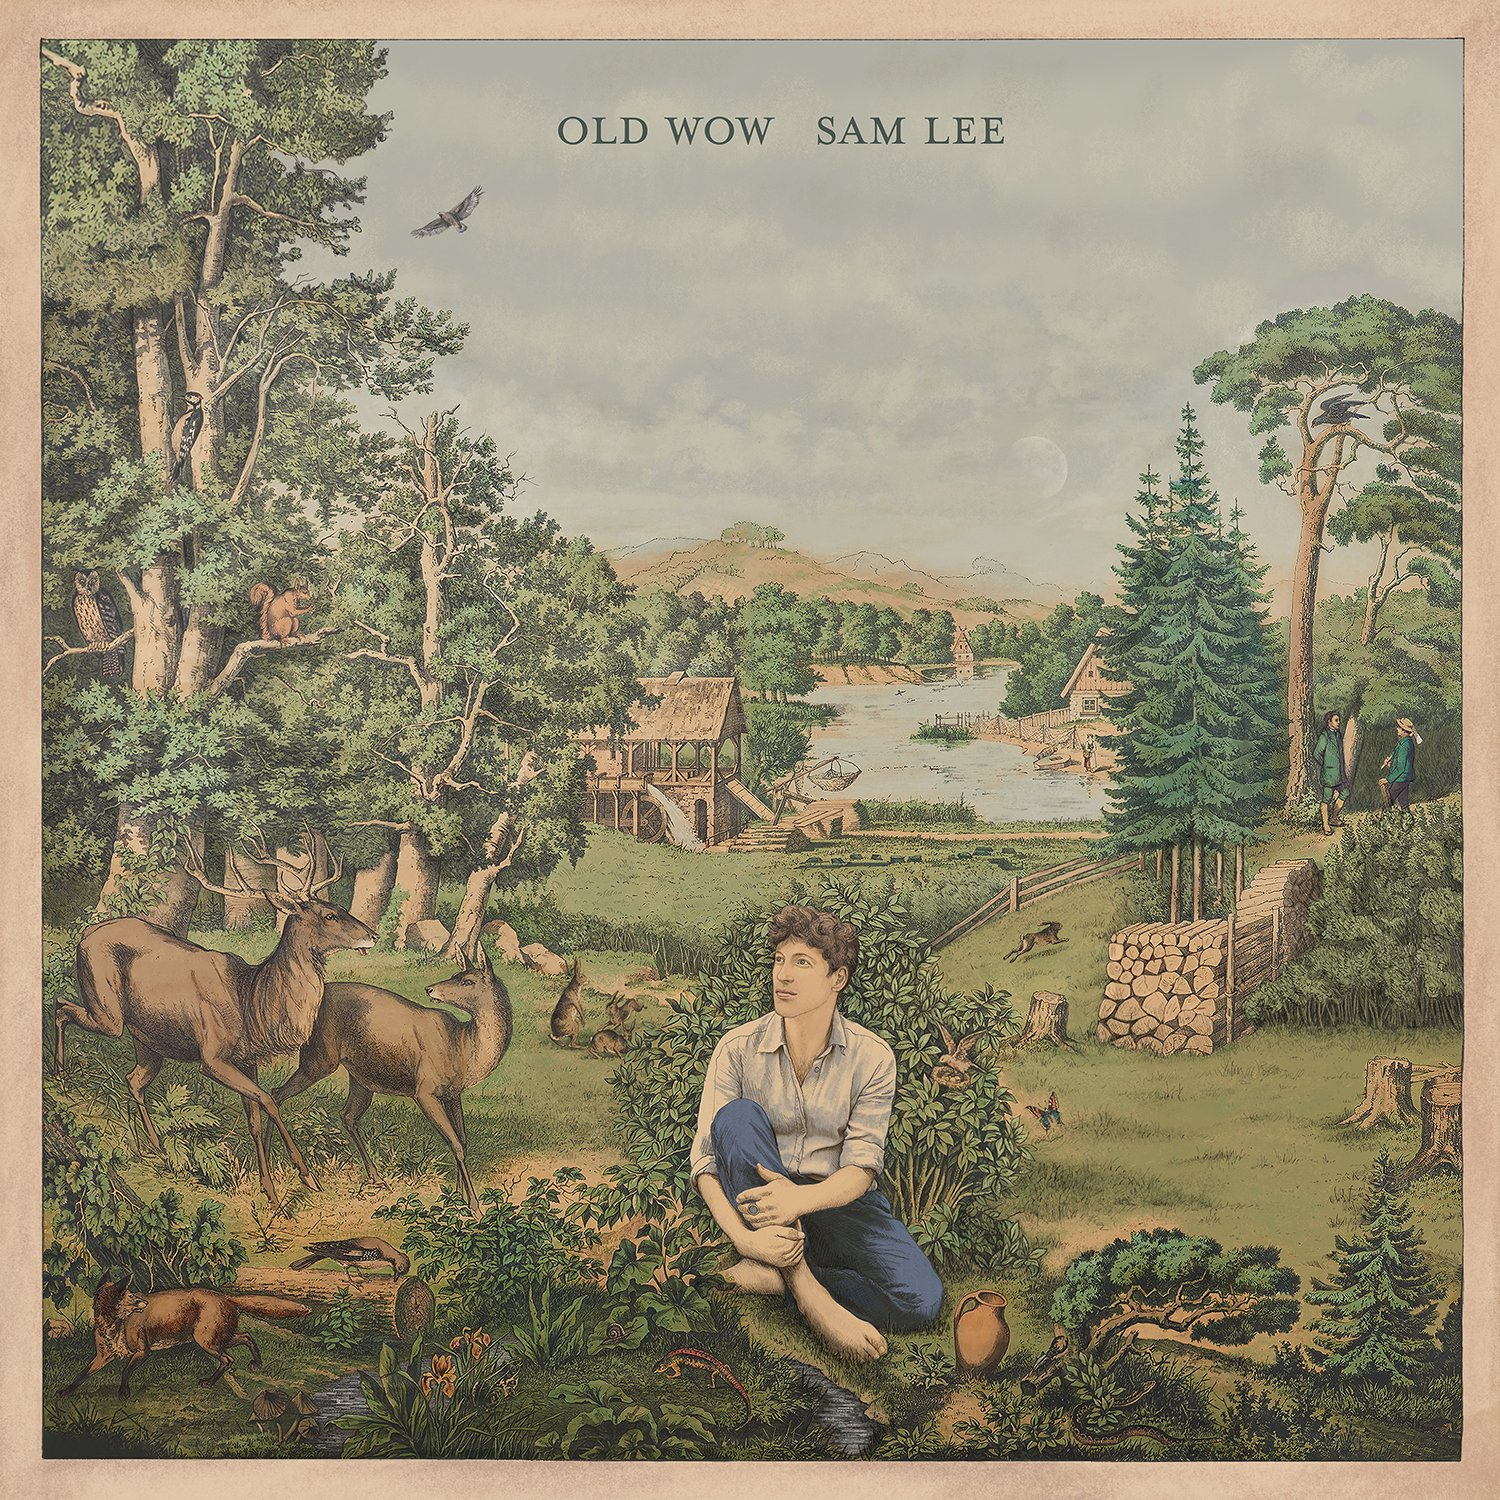 ALBUM REVIEW: Sam Lee - Old Wow